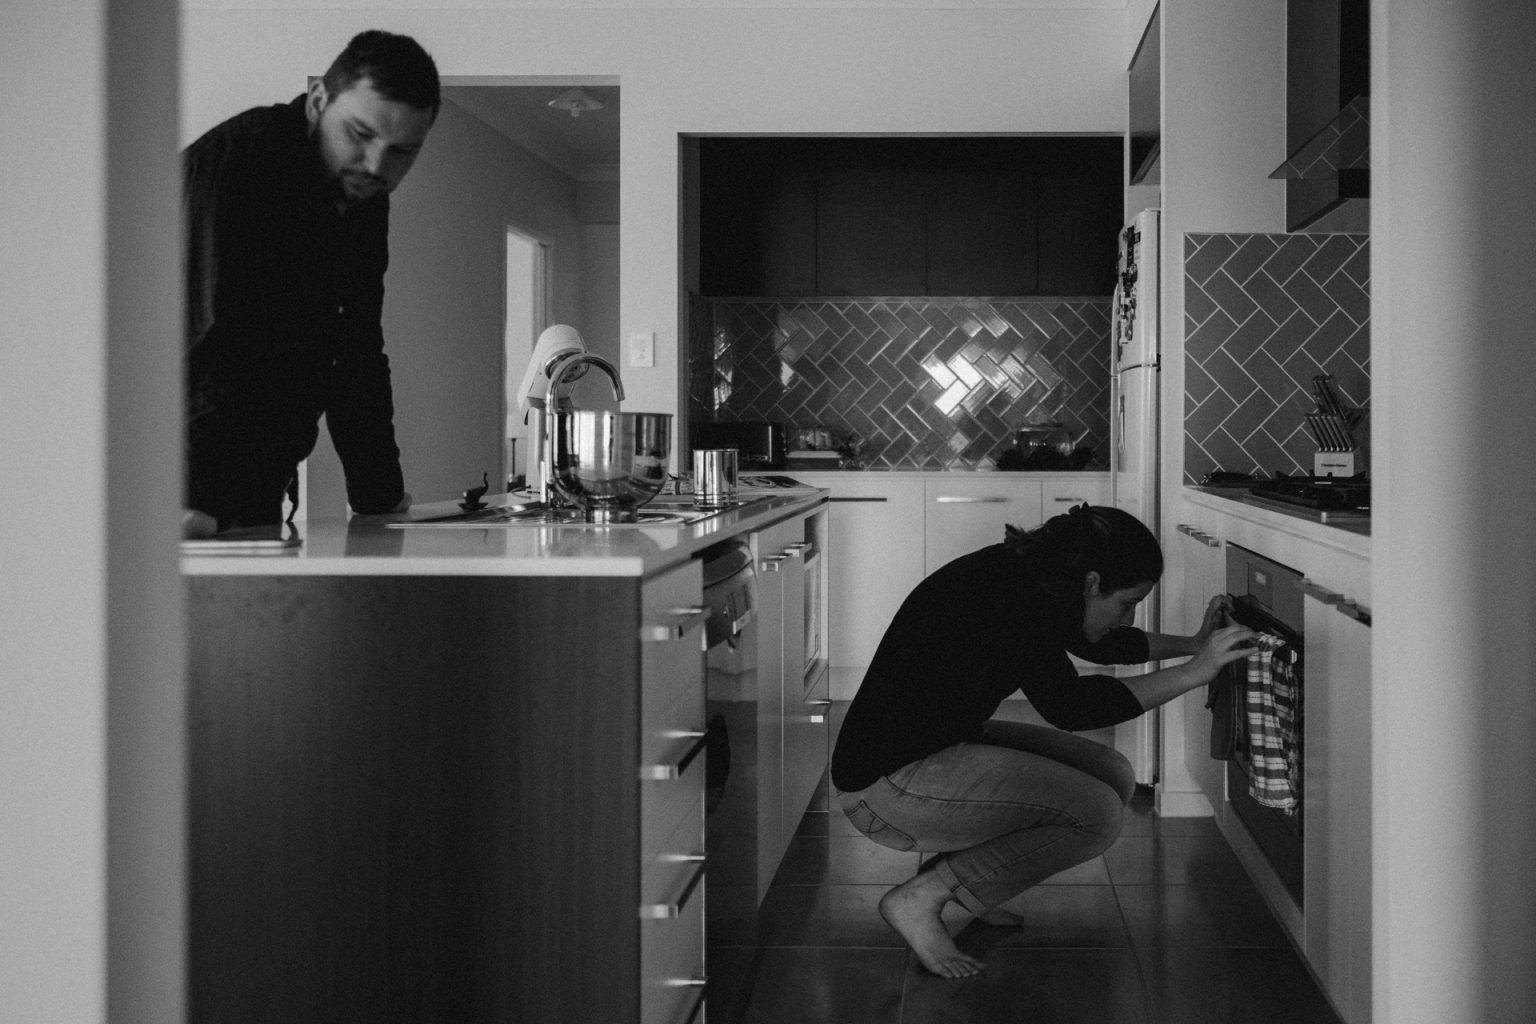 man and woman in kitchen making cupcakes